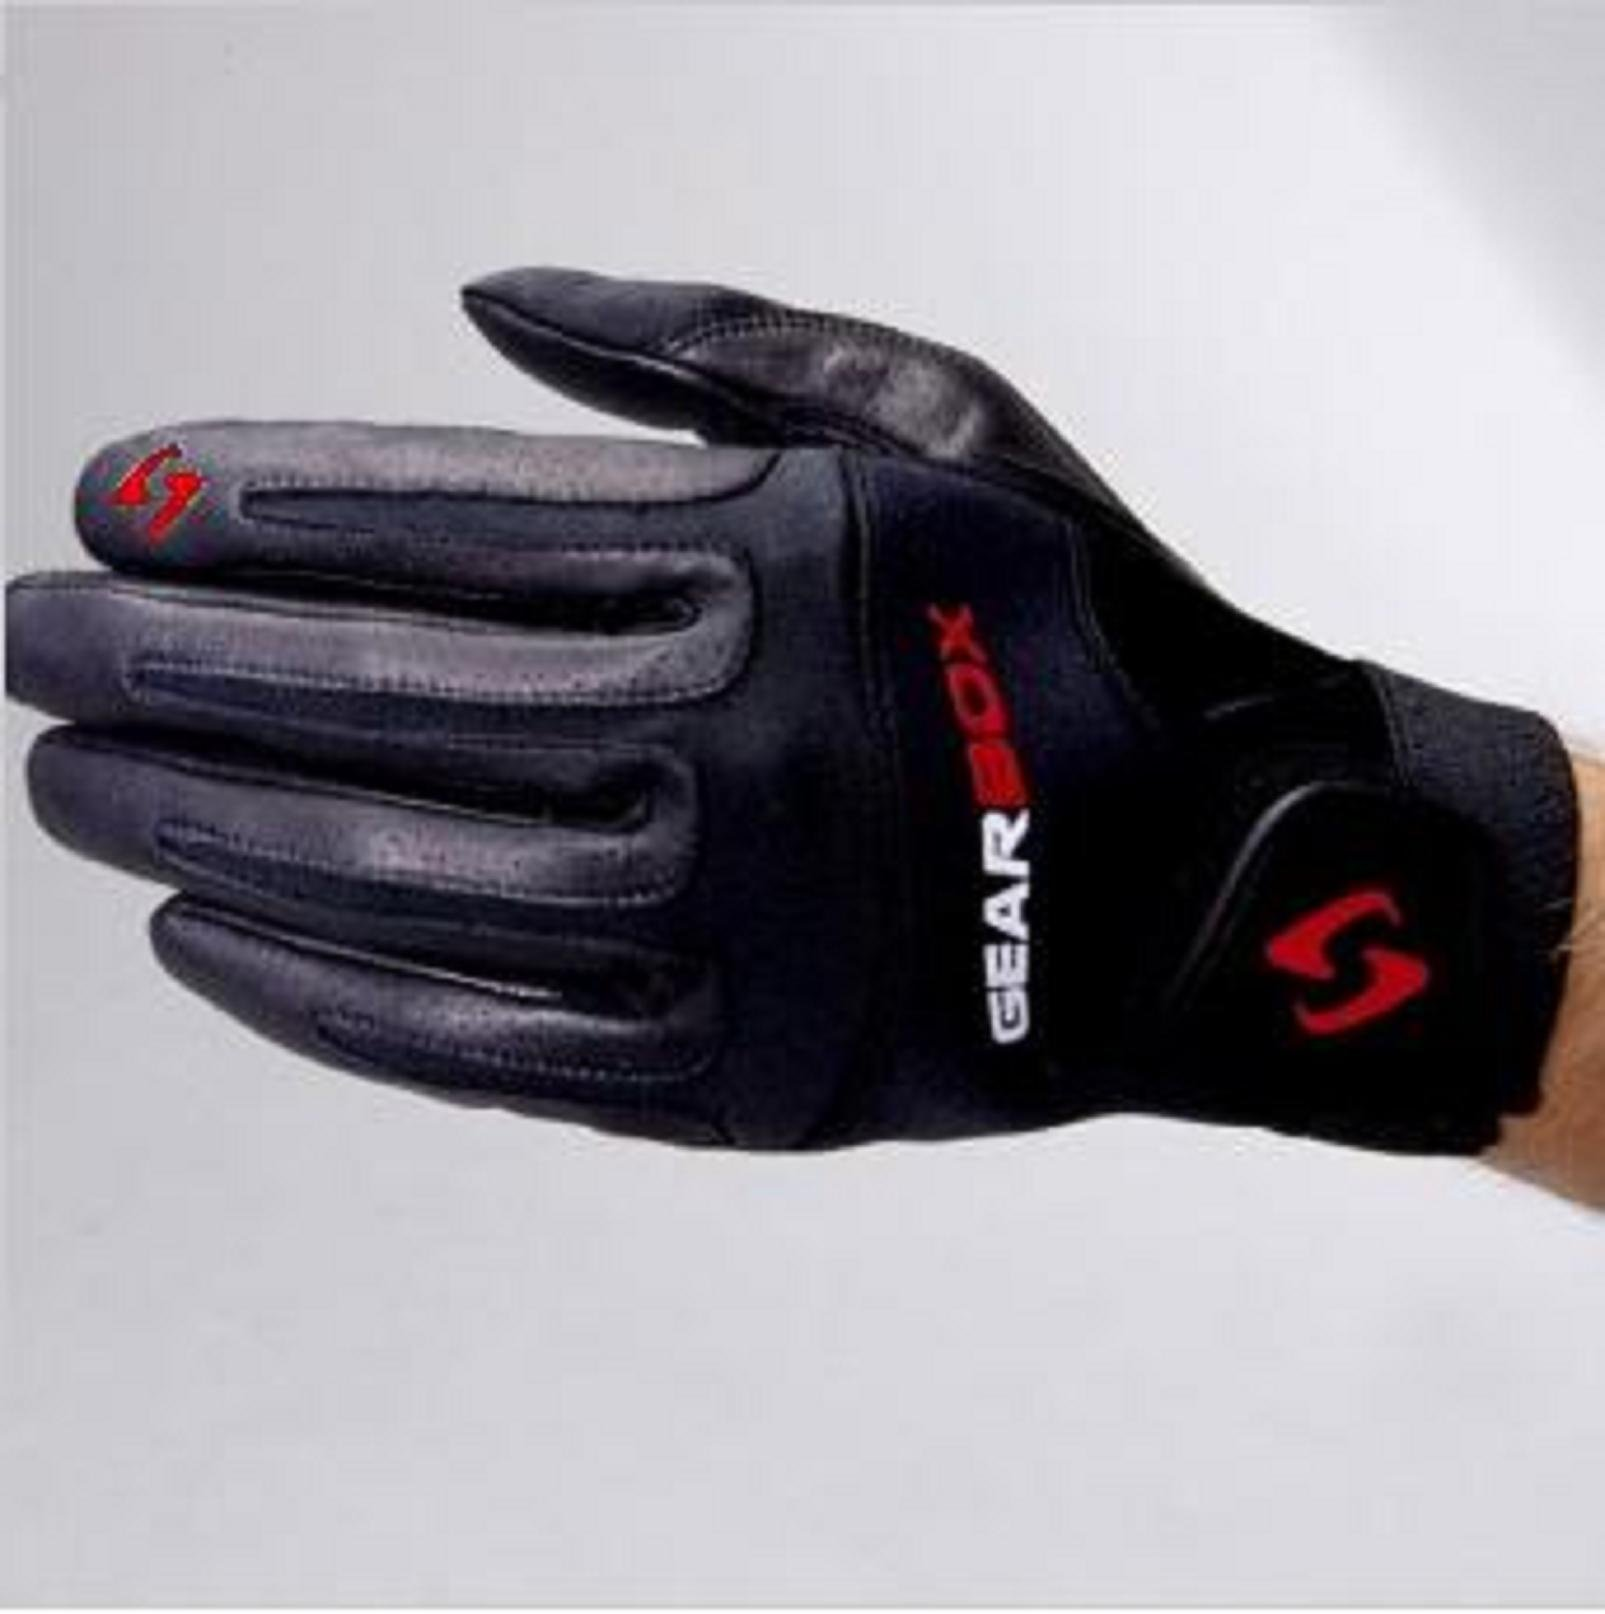 Gearbox Six (6) Extra Large Movement Racquetball Gloves Six Pack